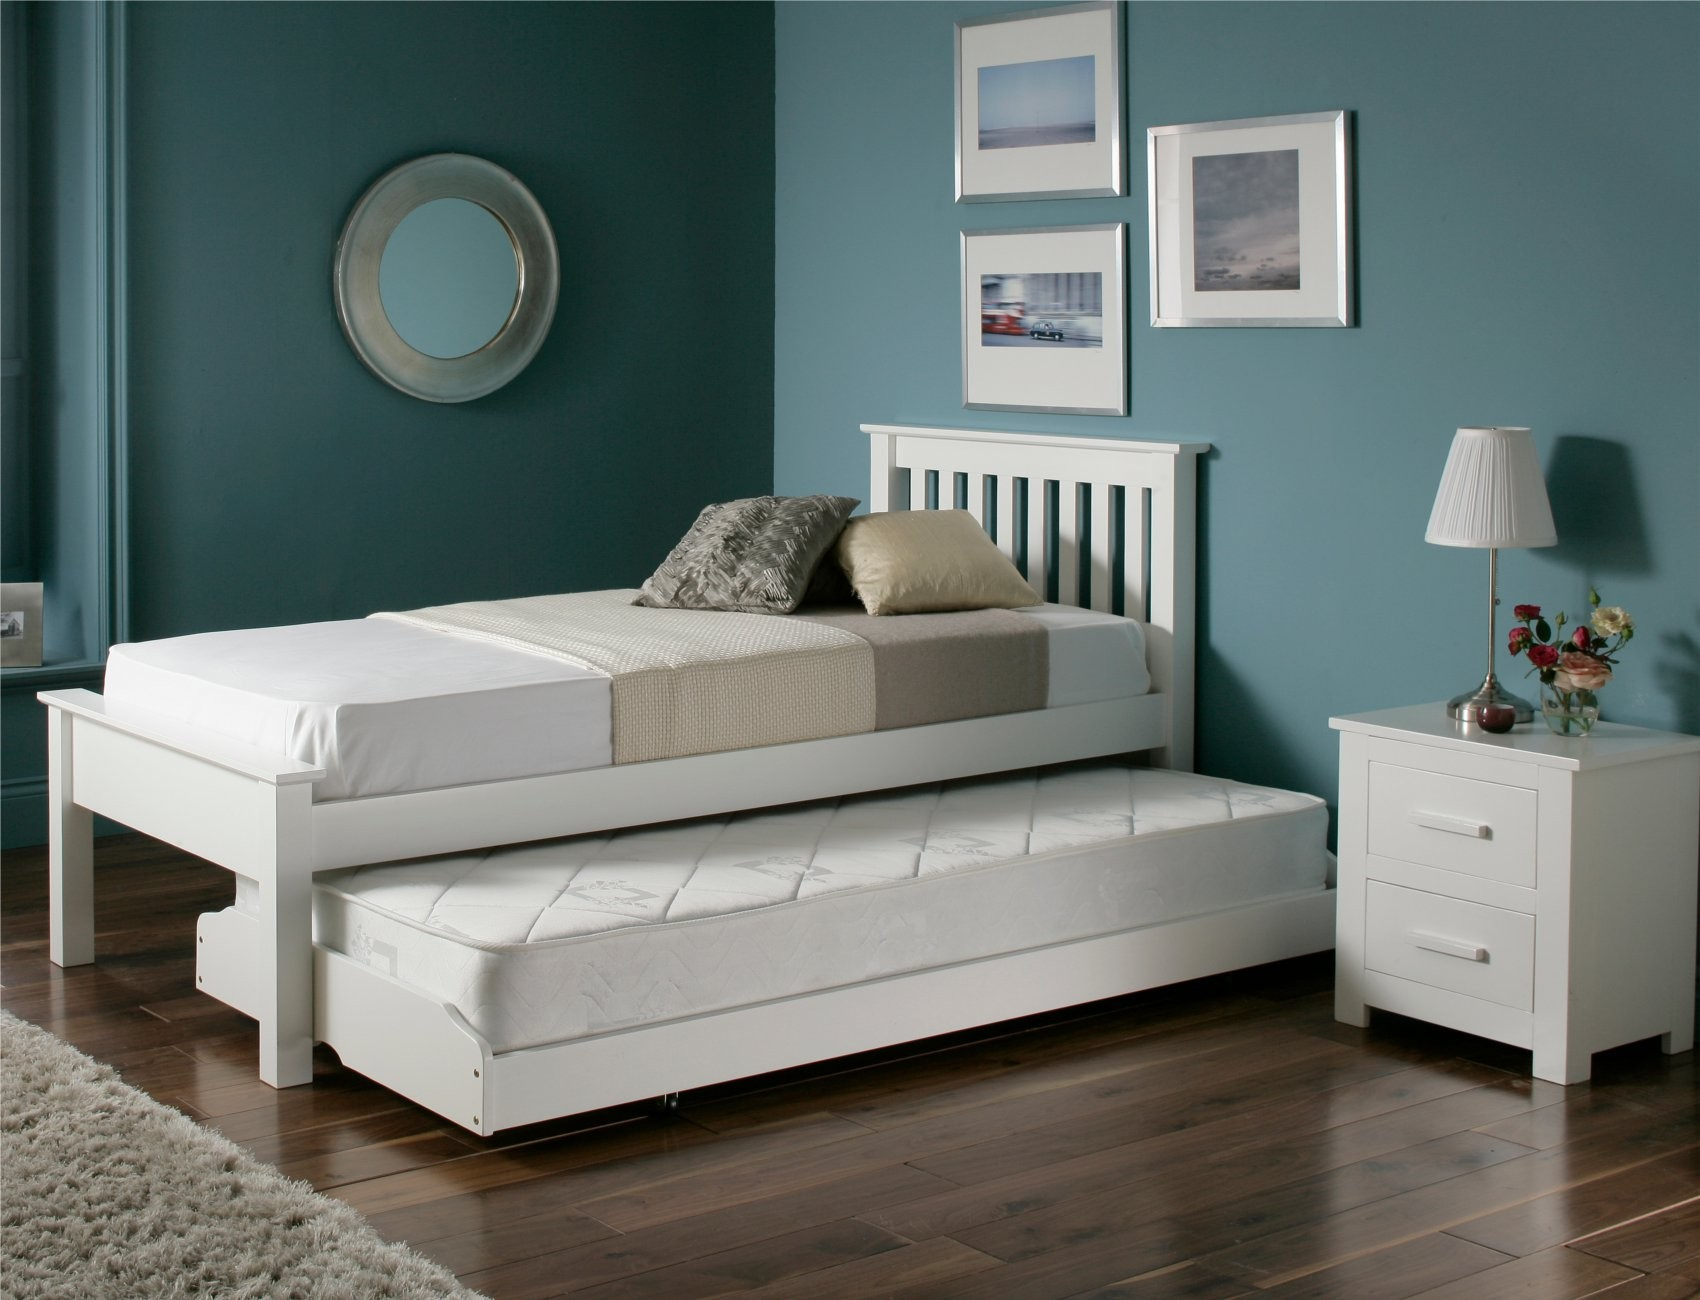 Guest beds for small spaces homesfeed - Guest bed options for small spaces paint ...